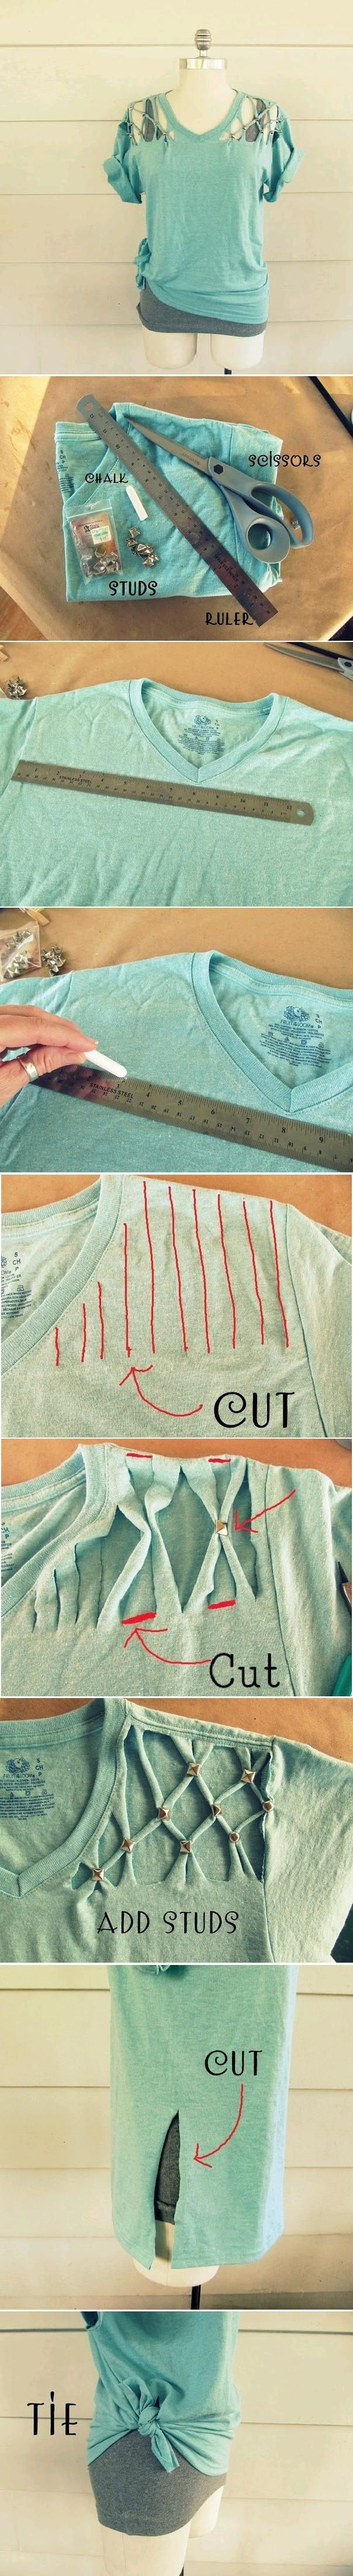 String studs shoulder tshirt refashion.